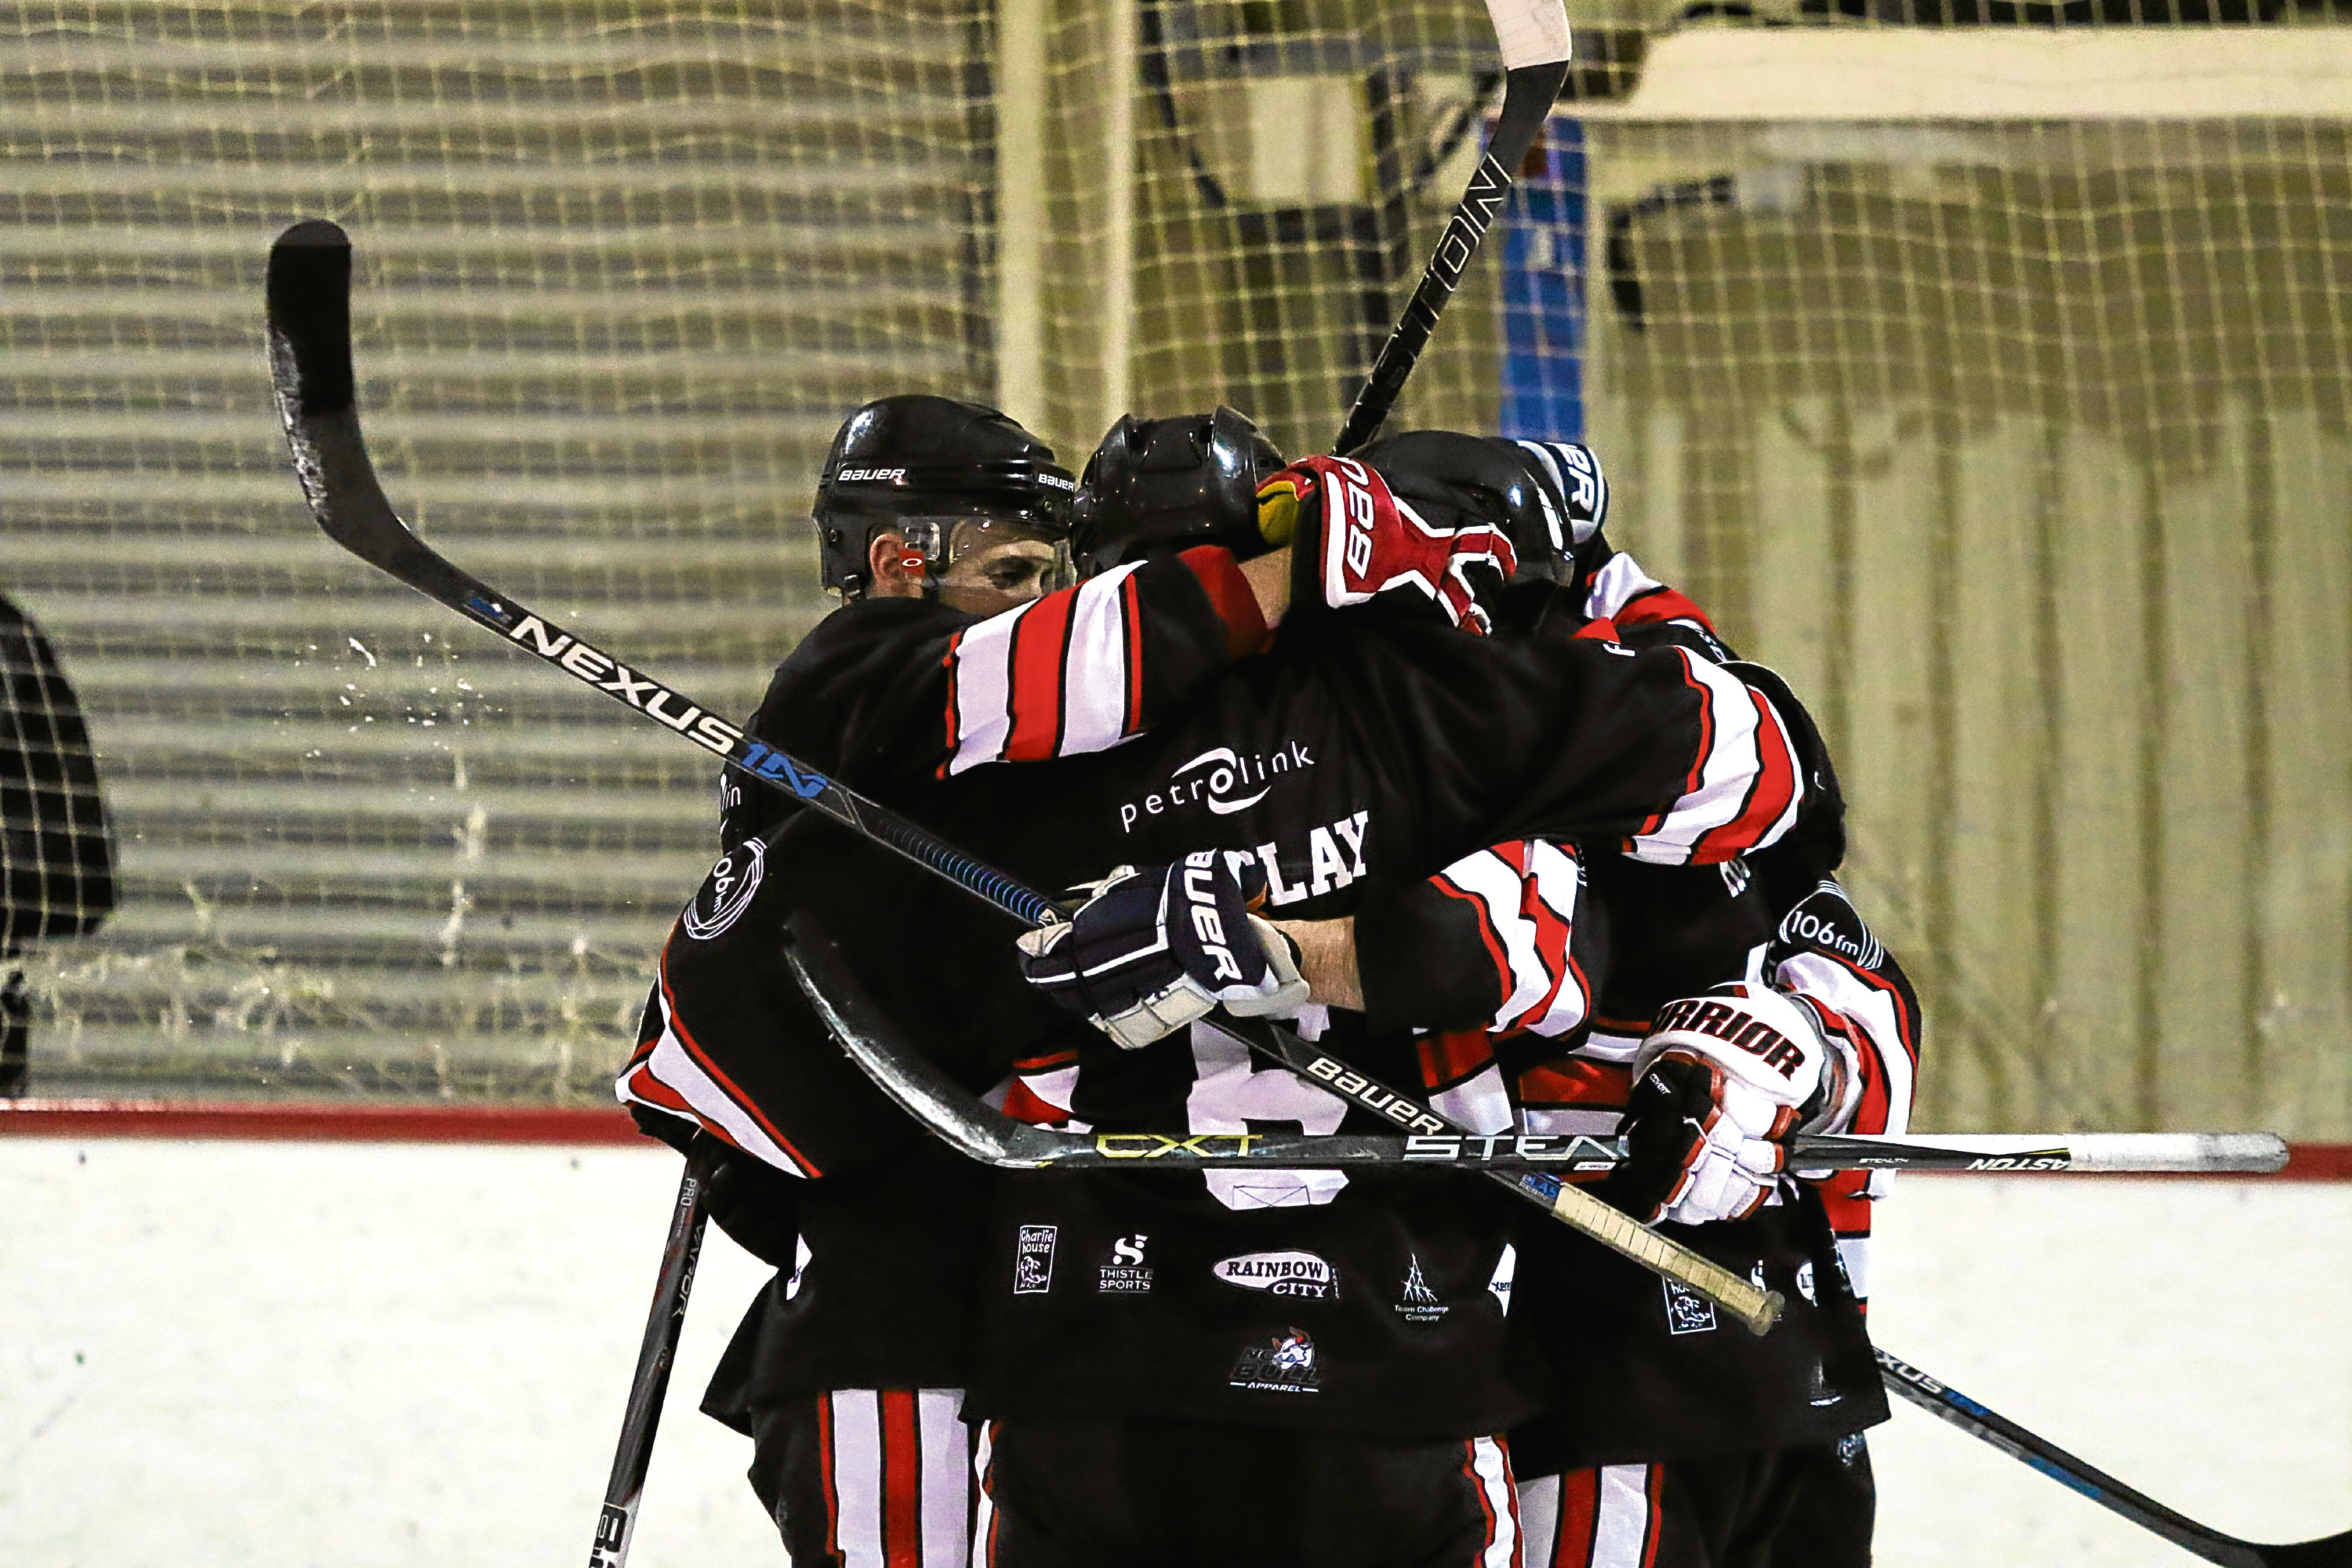 Aberdeen Lynx celebrate against Moray Typhoons.  Picture by Ferguson Photography